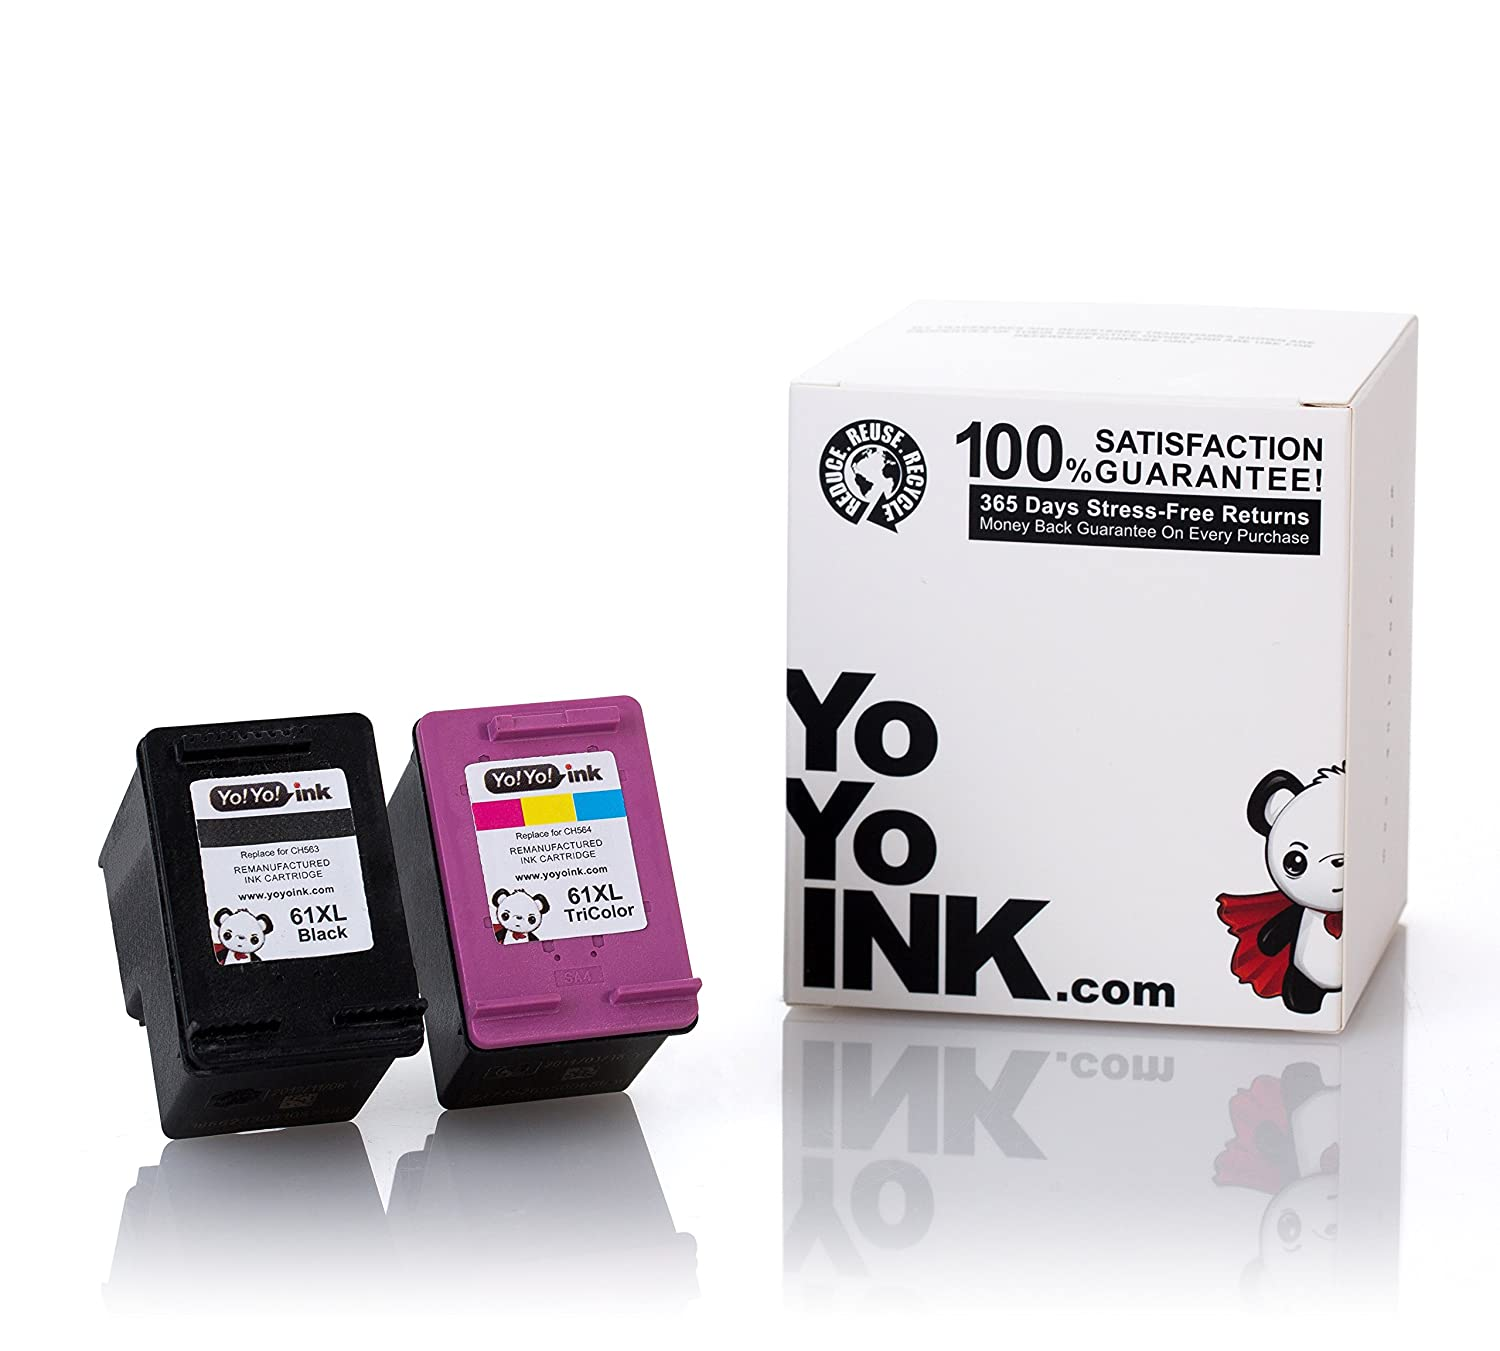 YoYoInk Remanufactured Ink Cartridge Replacement for HP 61 XL 61XL (1 Black, 1 Color) for HP Deskjet 2540 Envy 4500 OfficeJet 4500 4630